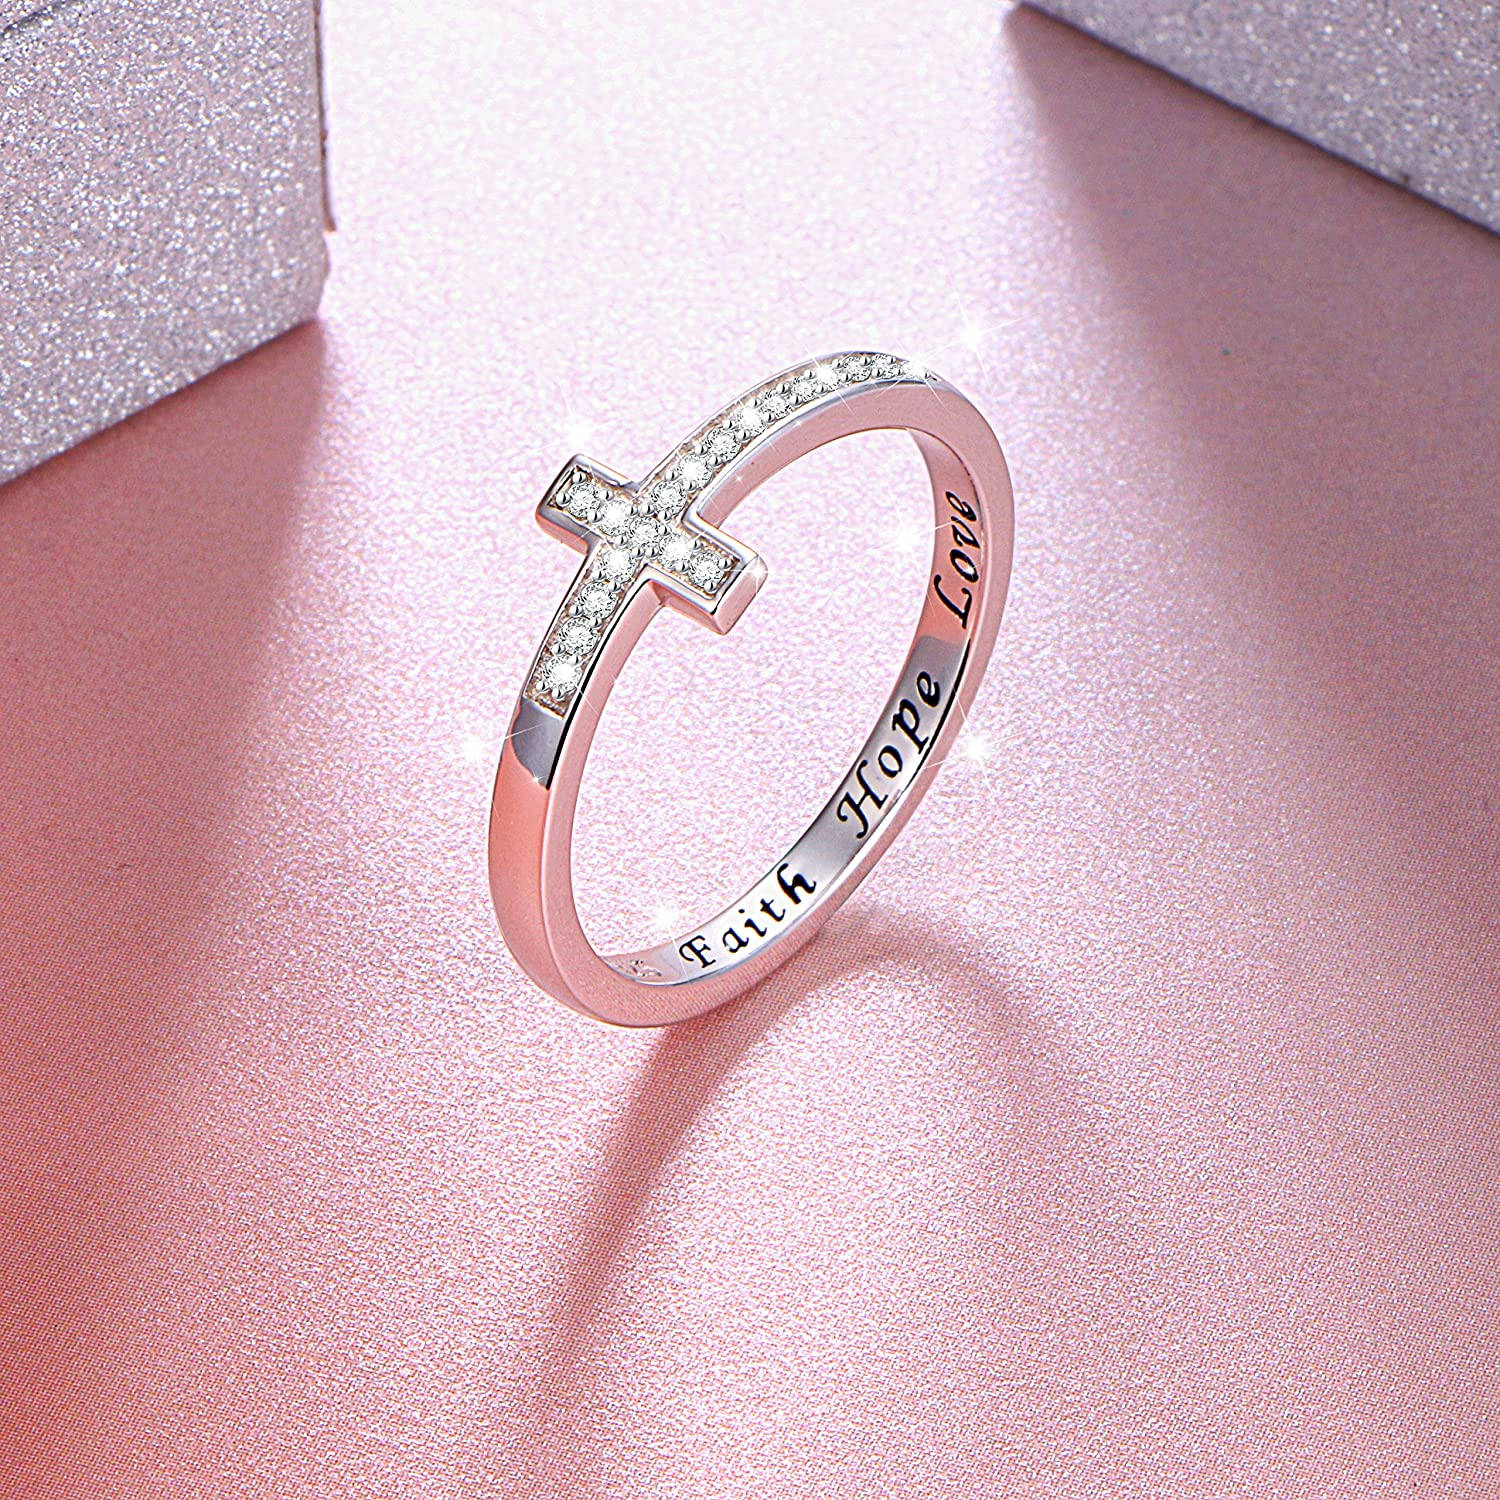 Amazon.com: DAOCHONG Inspirational Jewelry Sterling Silver Engraved ...